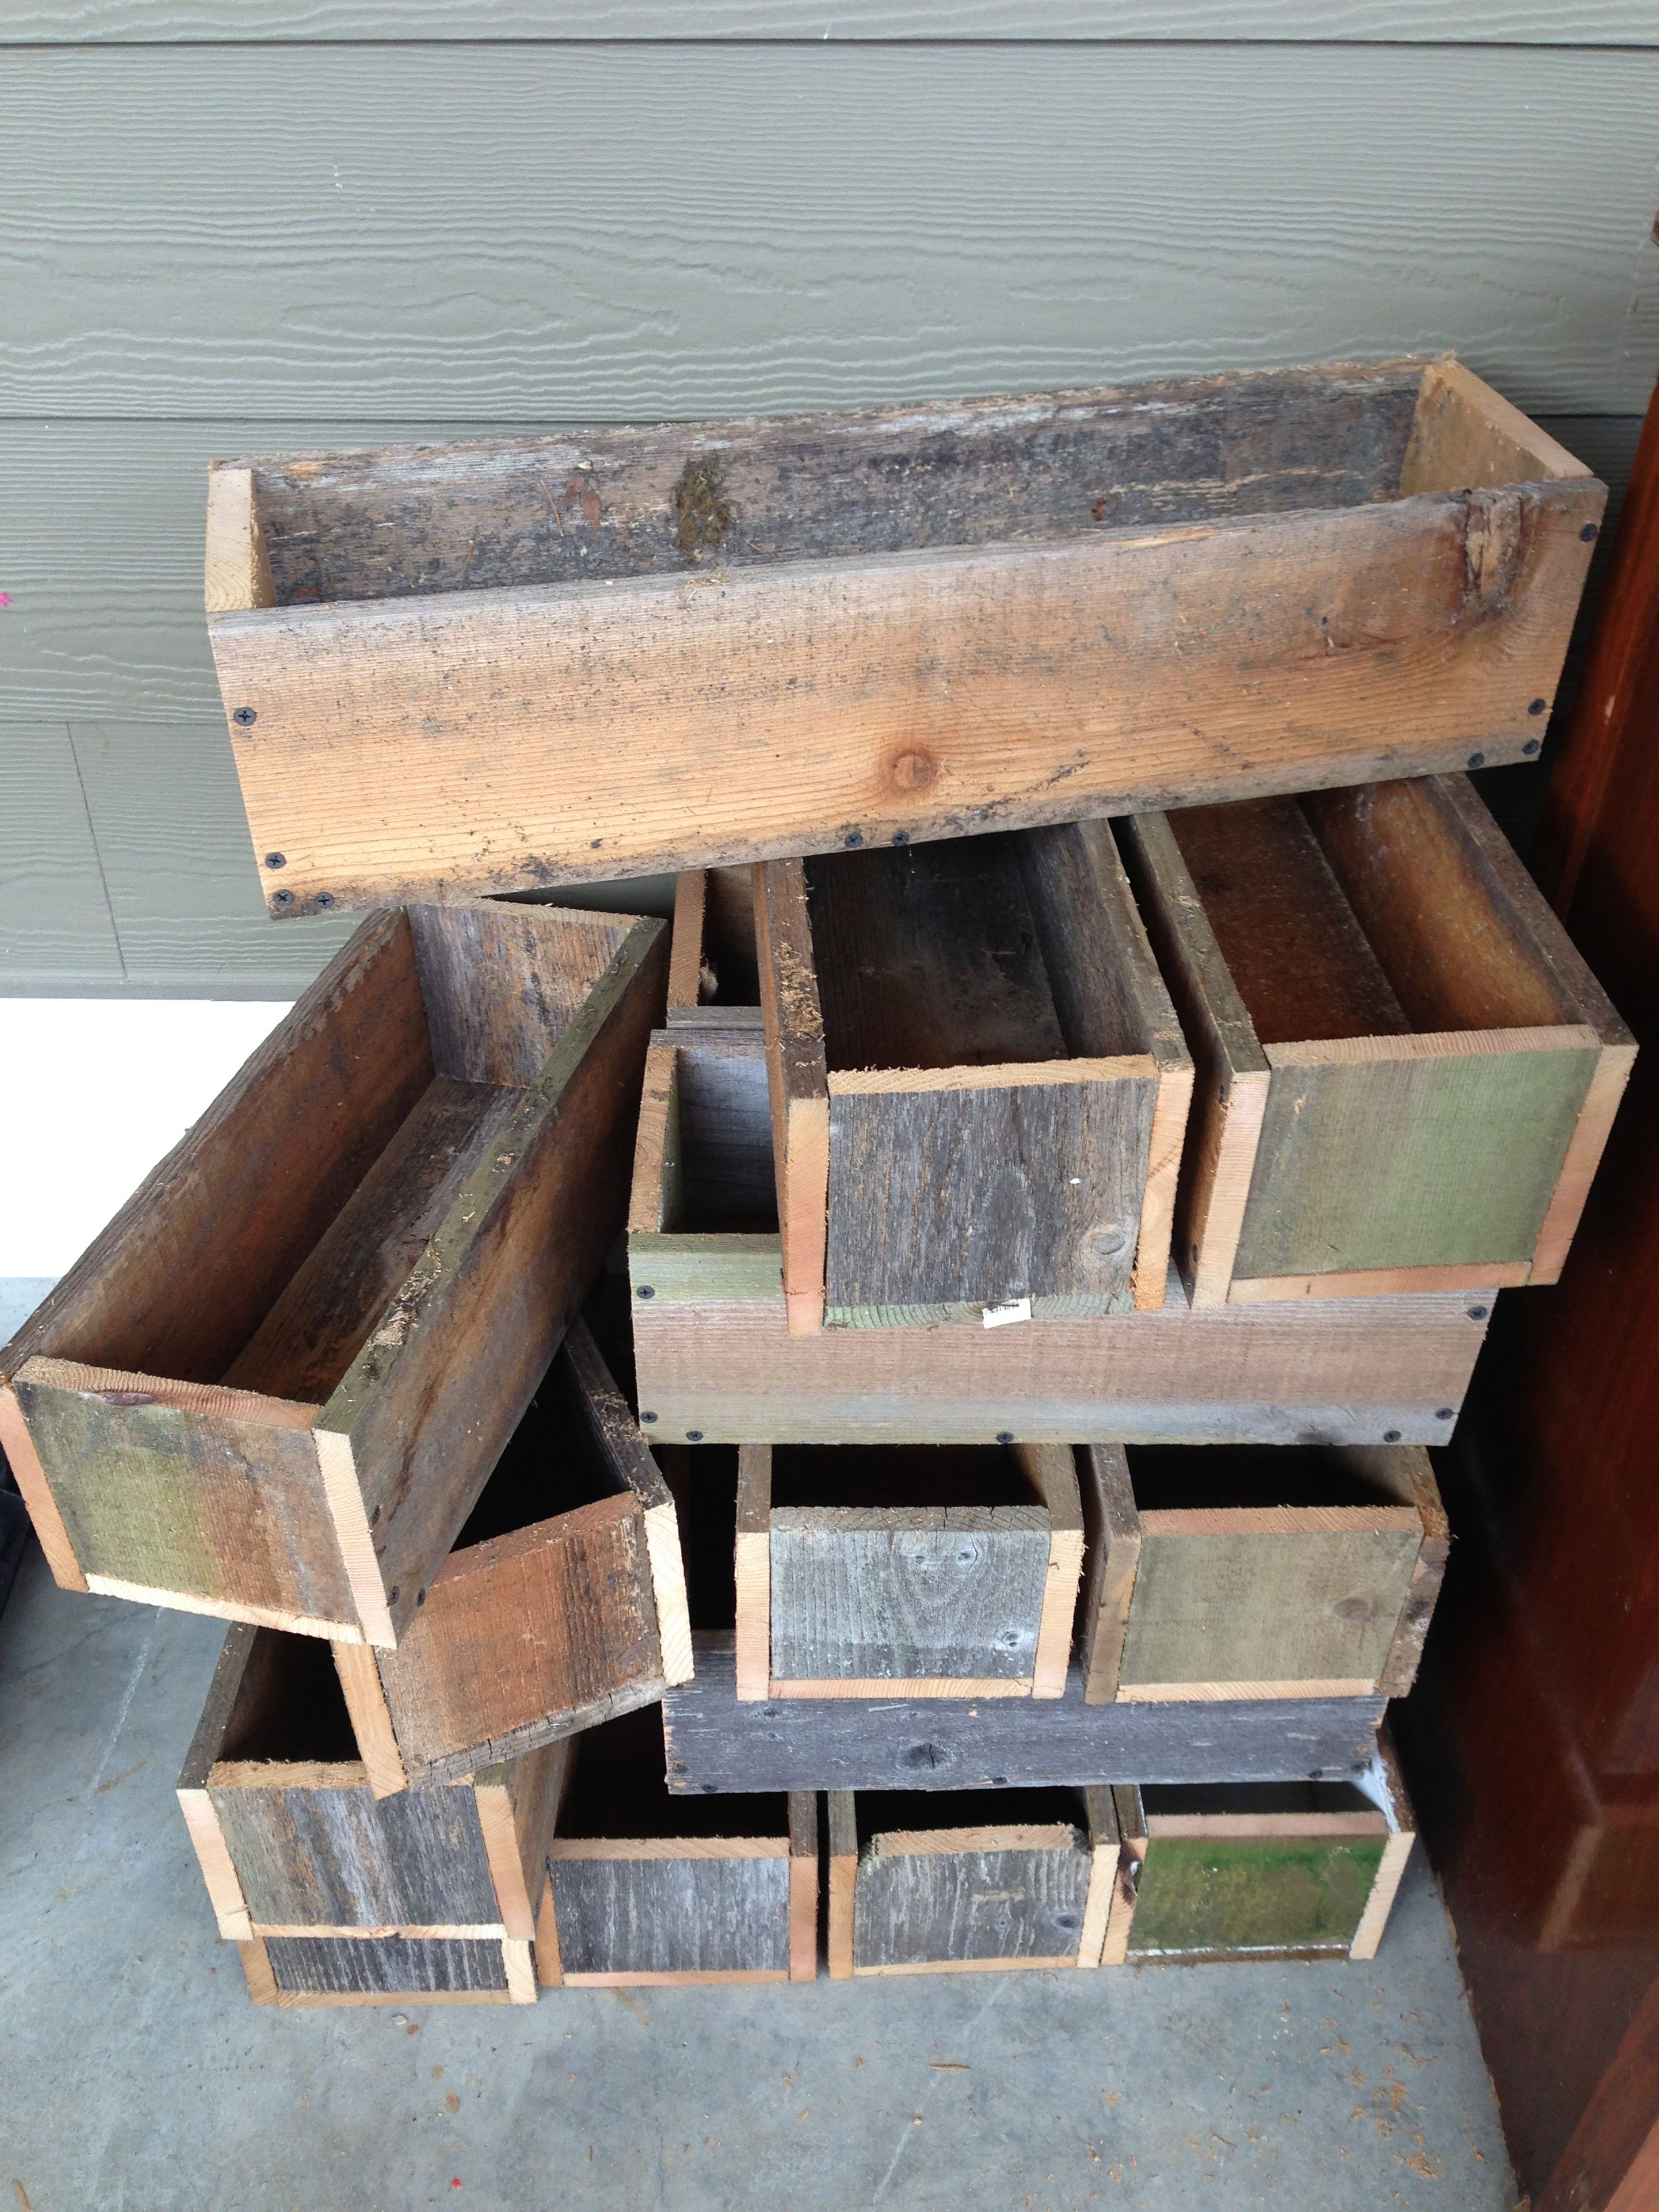 Cedar Boxes Repurposed Fence Boards So Many Options Flower Box Centerpiece With Jars And Ca Barn Wood Crafts Scrap Wood Projects Reclaimed Wood Projects